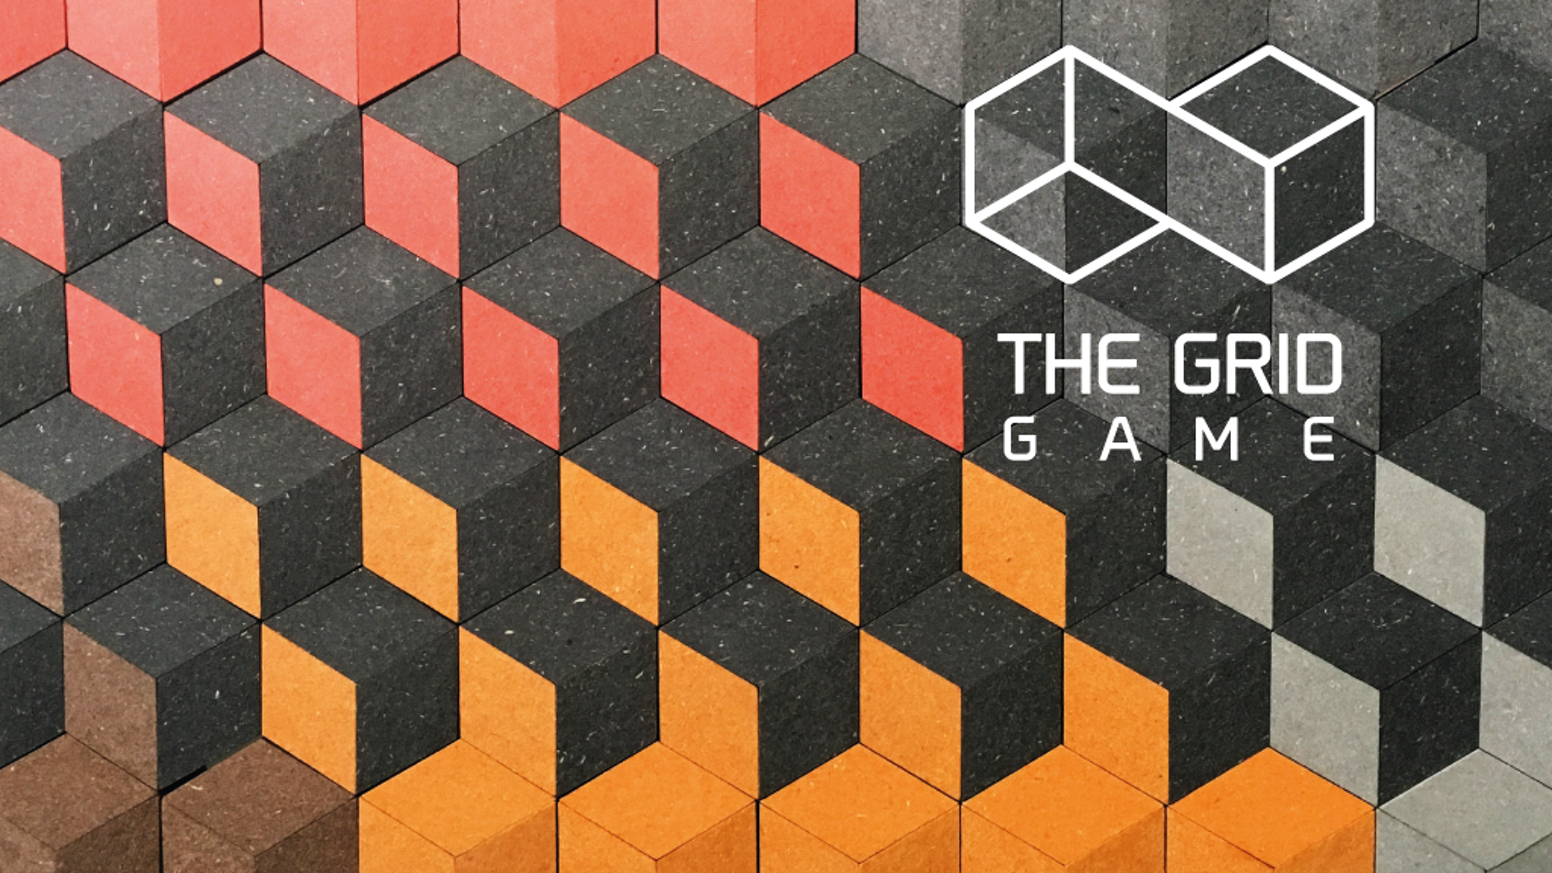 The Grid Game, a revolutionary game of connections. Questions? send us an email to info@thegridgame.co